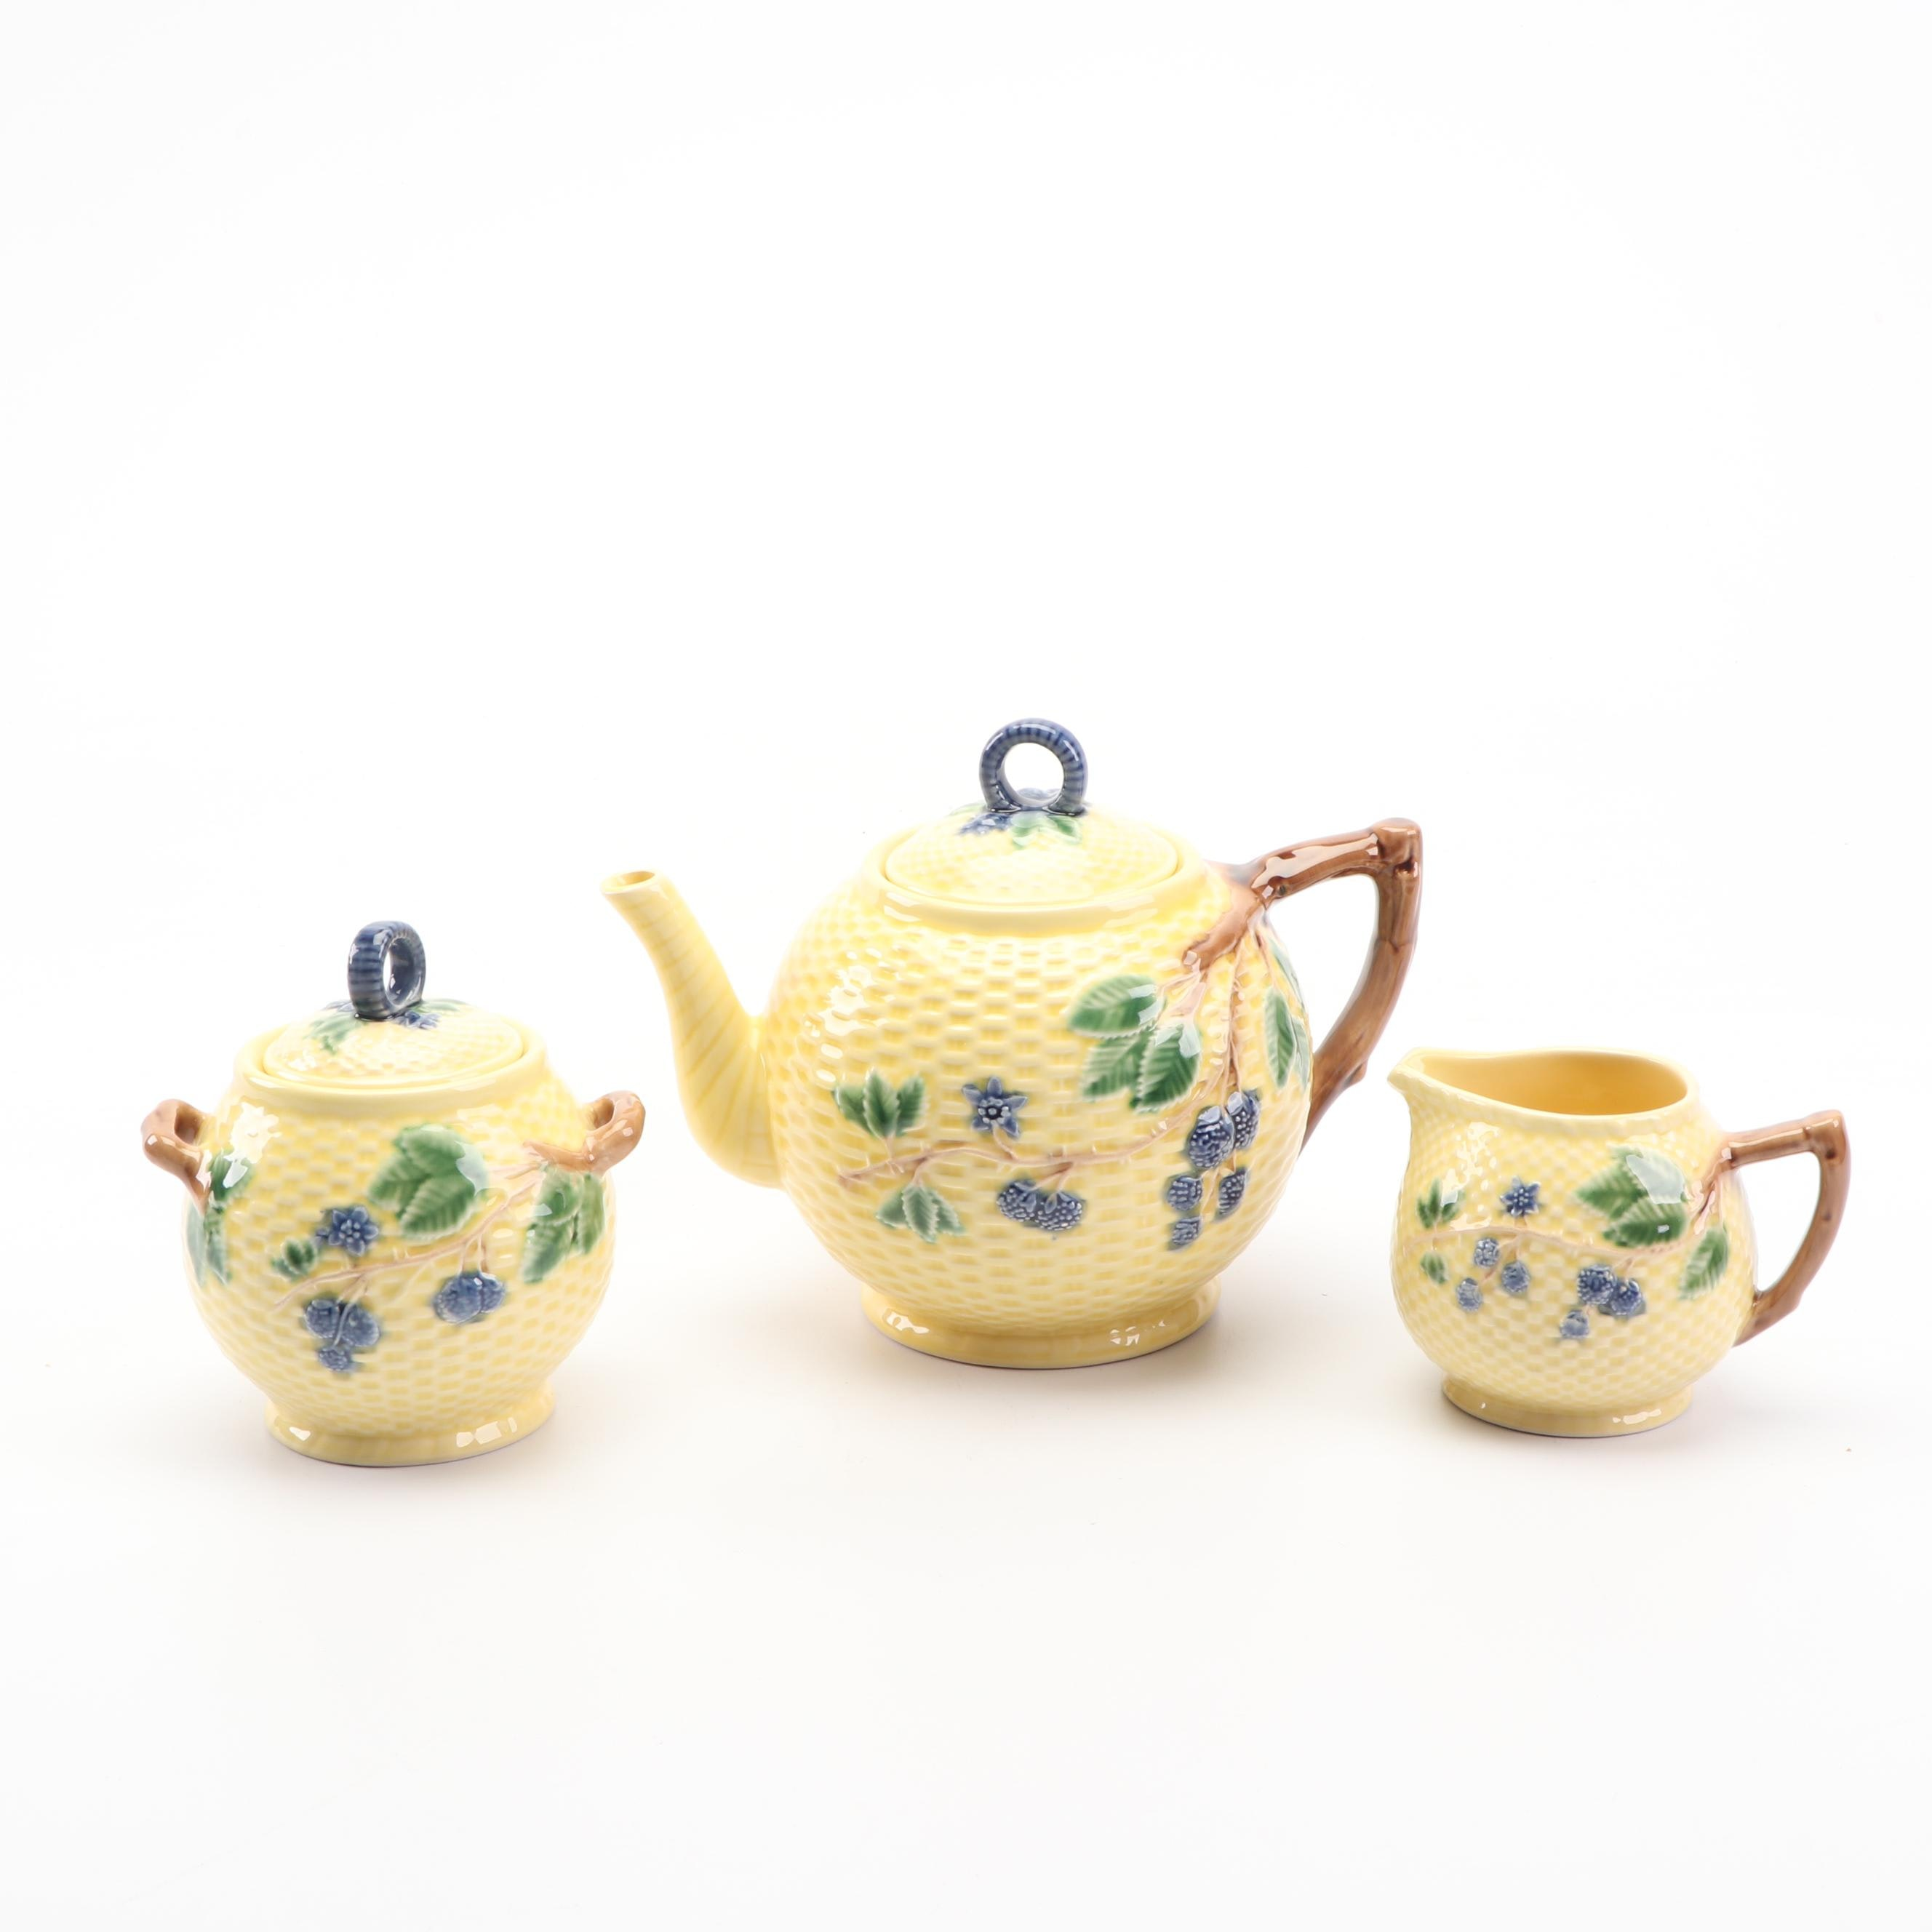 "Tiffany & Co. ""Blackberries"" Teapot, Creamer, and Sugar Bowl"